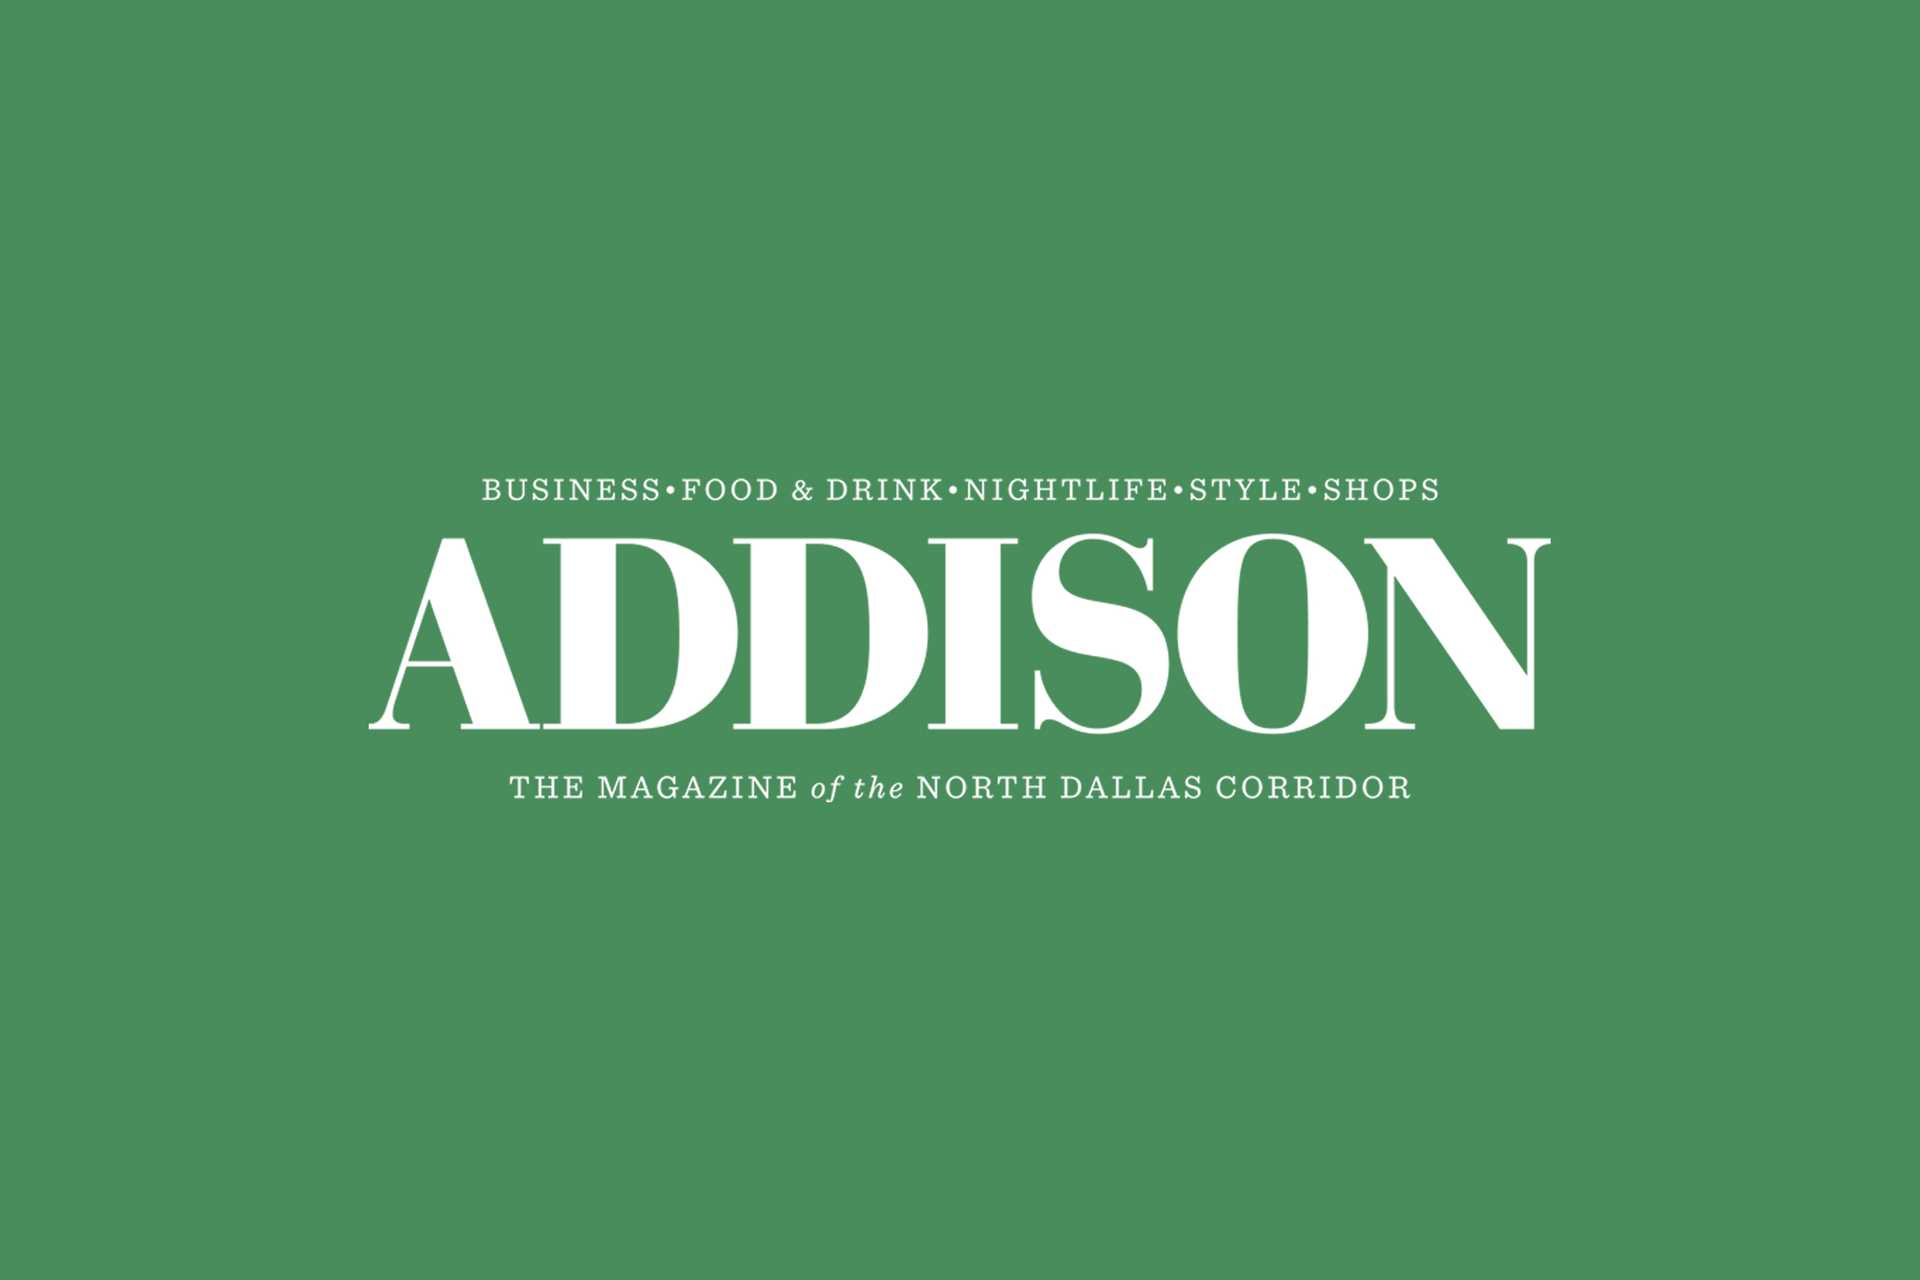 Business, Food & Drink, Nightlife, Style, Shops - Addison - The Magazine of the North Dallas Corridor on green